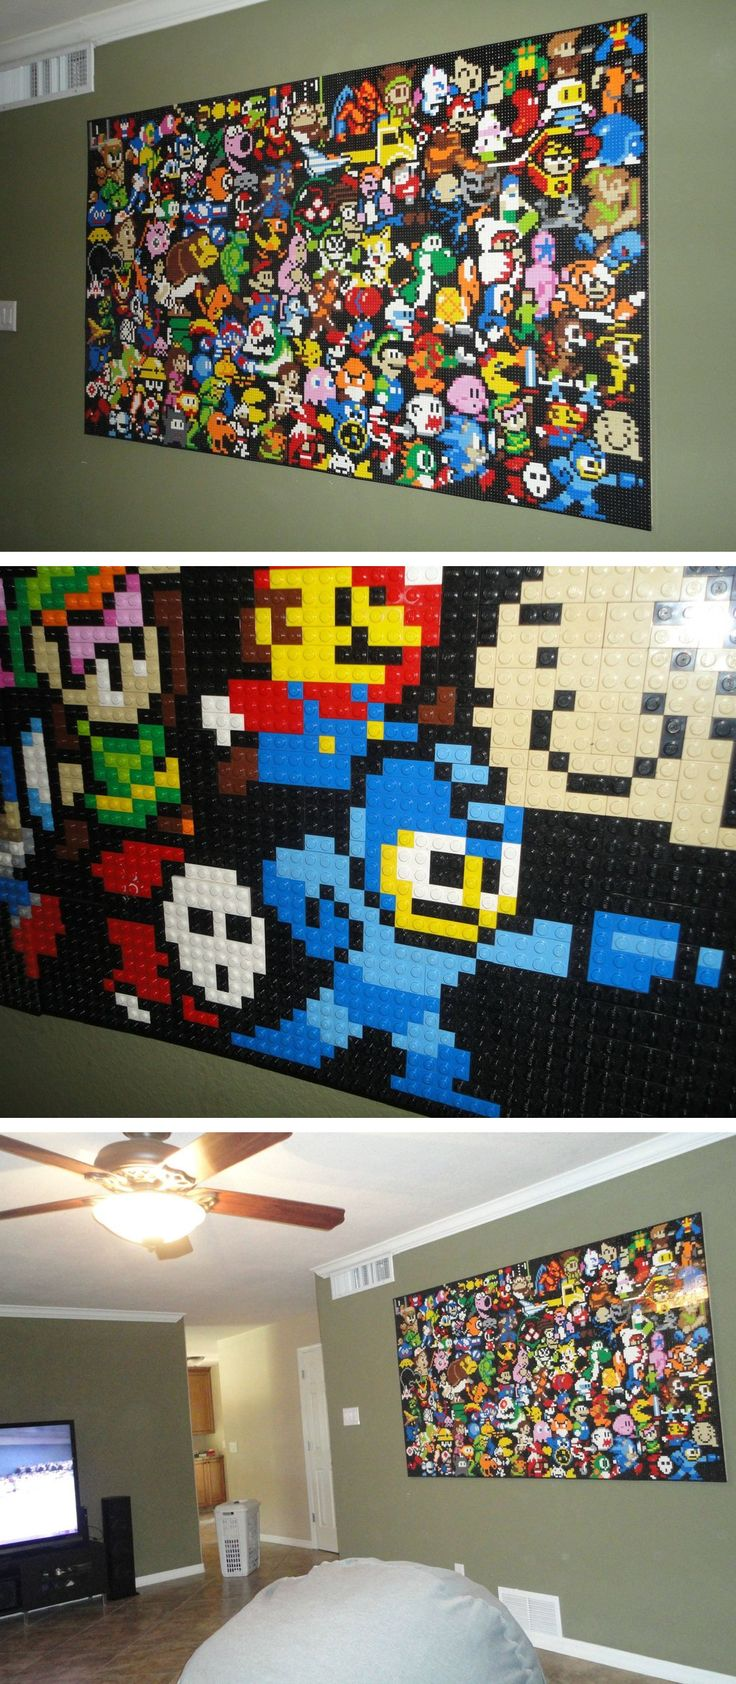 Lego Wall Mural Is Full of Gaming Icons